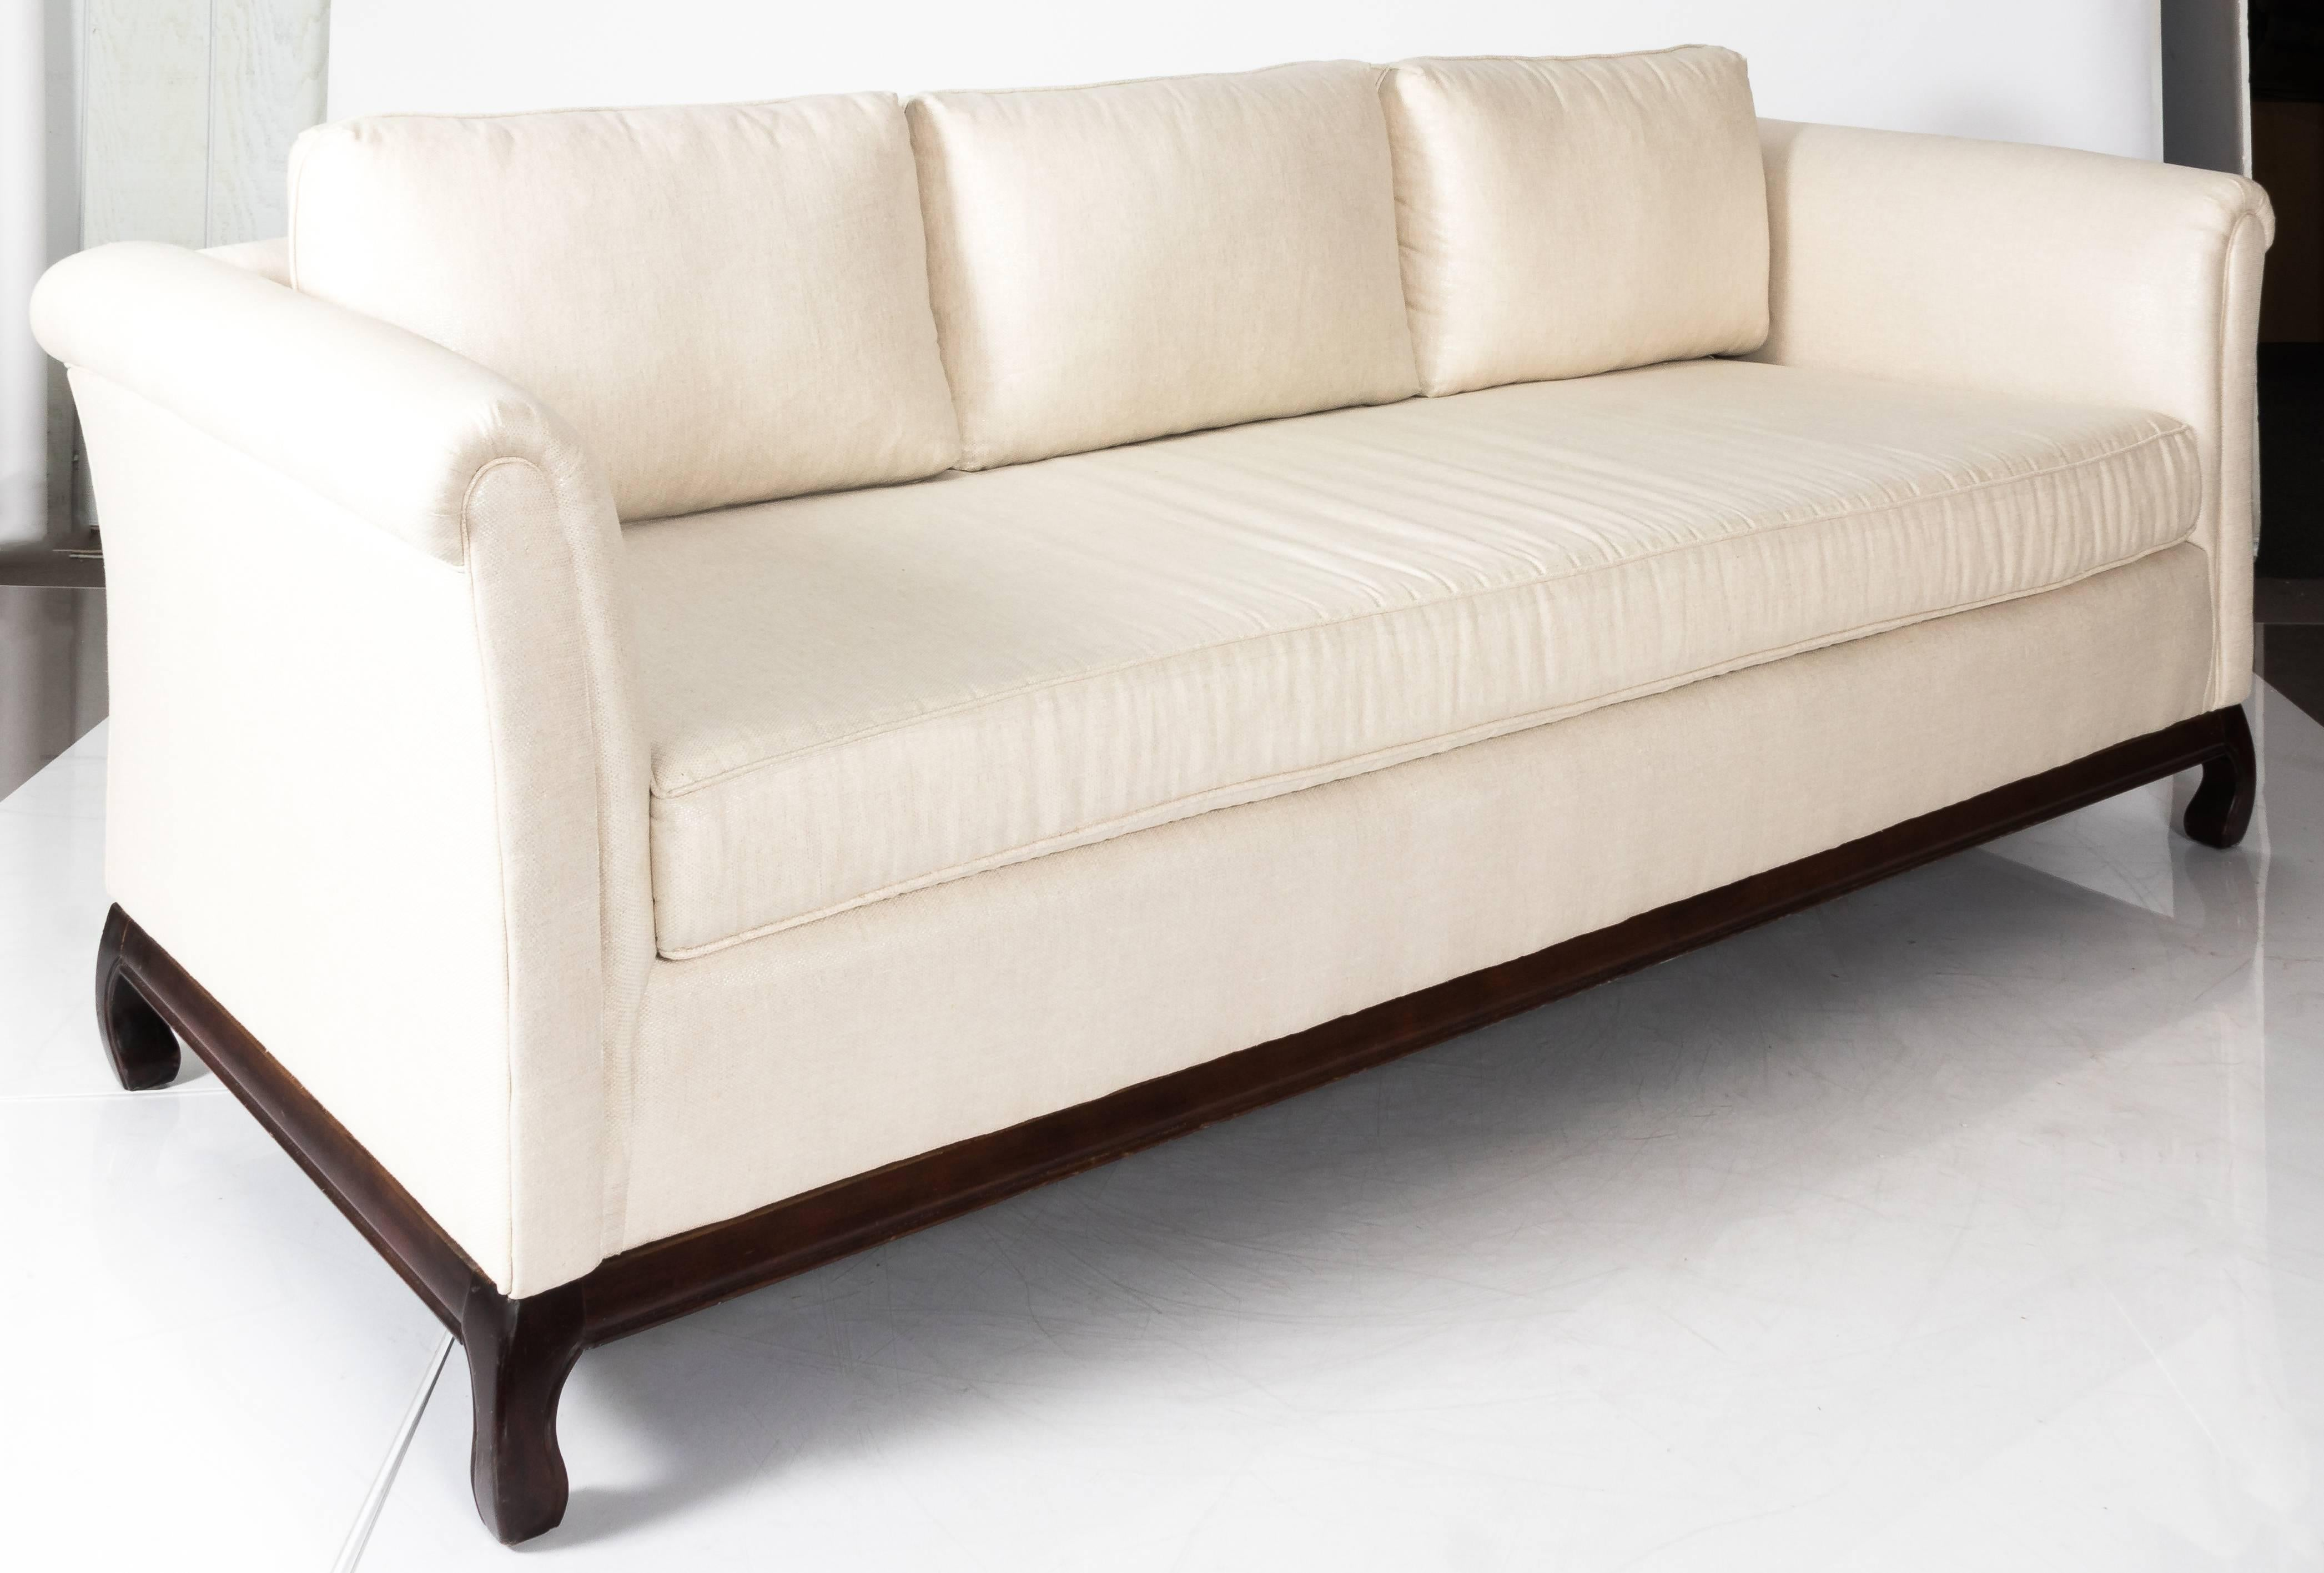 1970s Asian Style Sofa. Original Dark Walnut Ming Style Base. Newly  Upholstered In Off